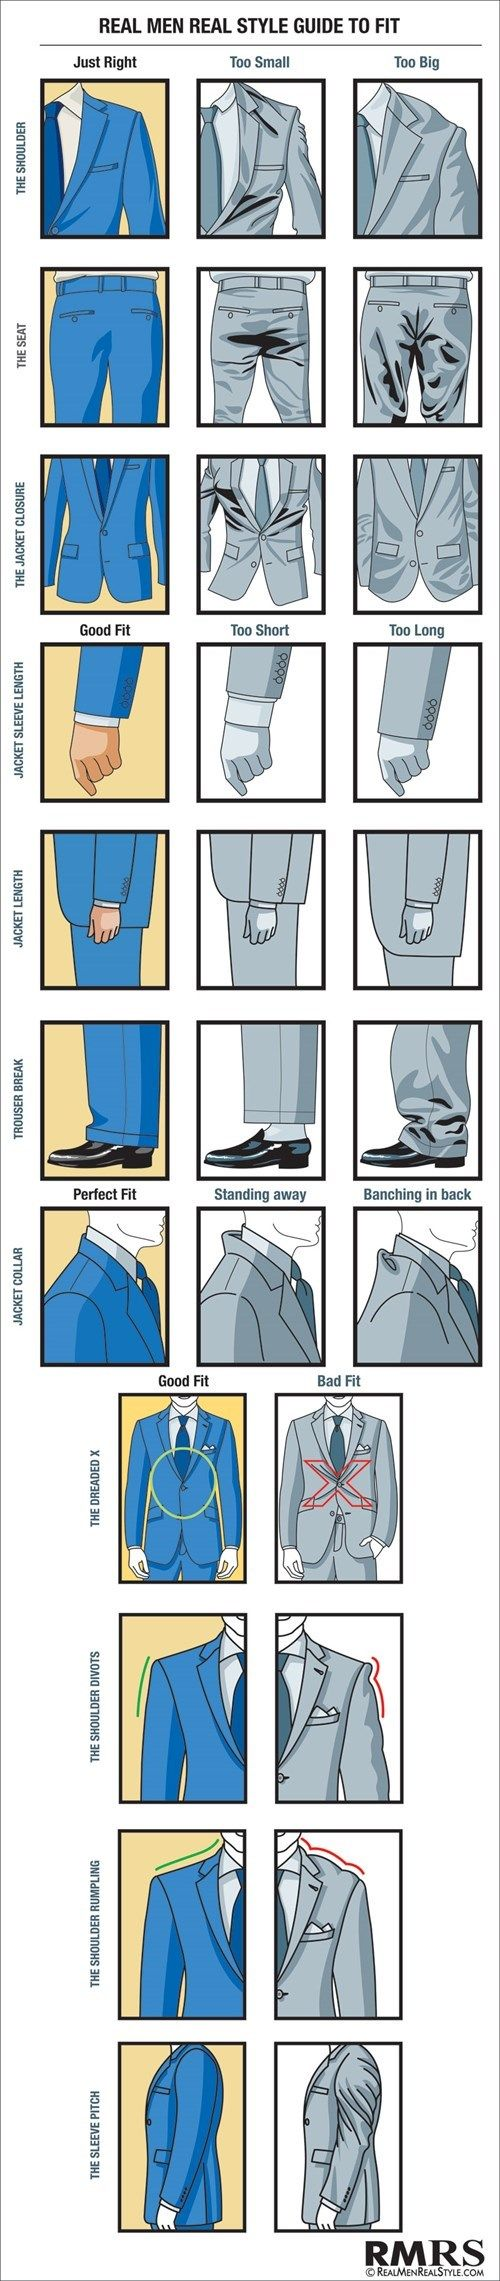 Men's Suit Fit Guide